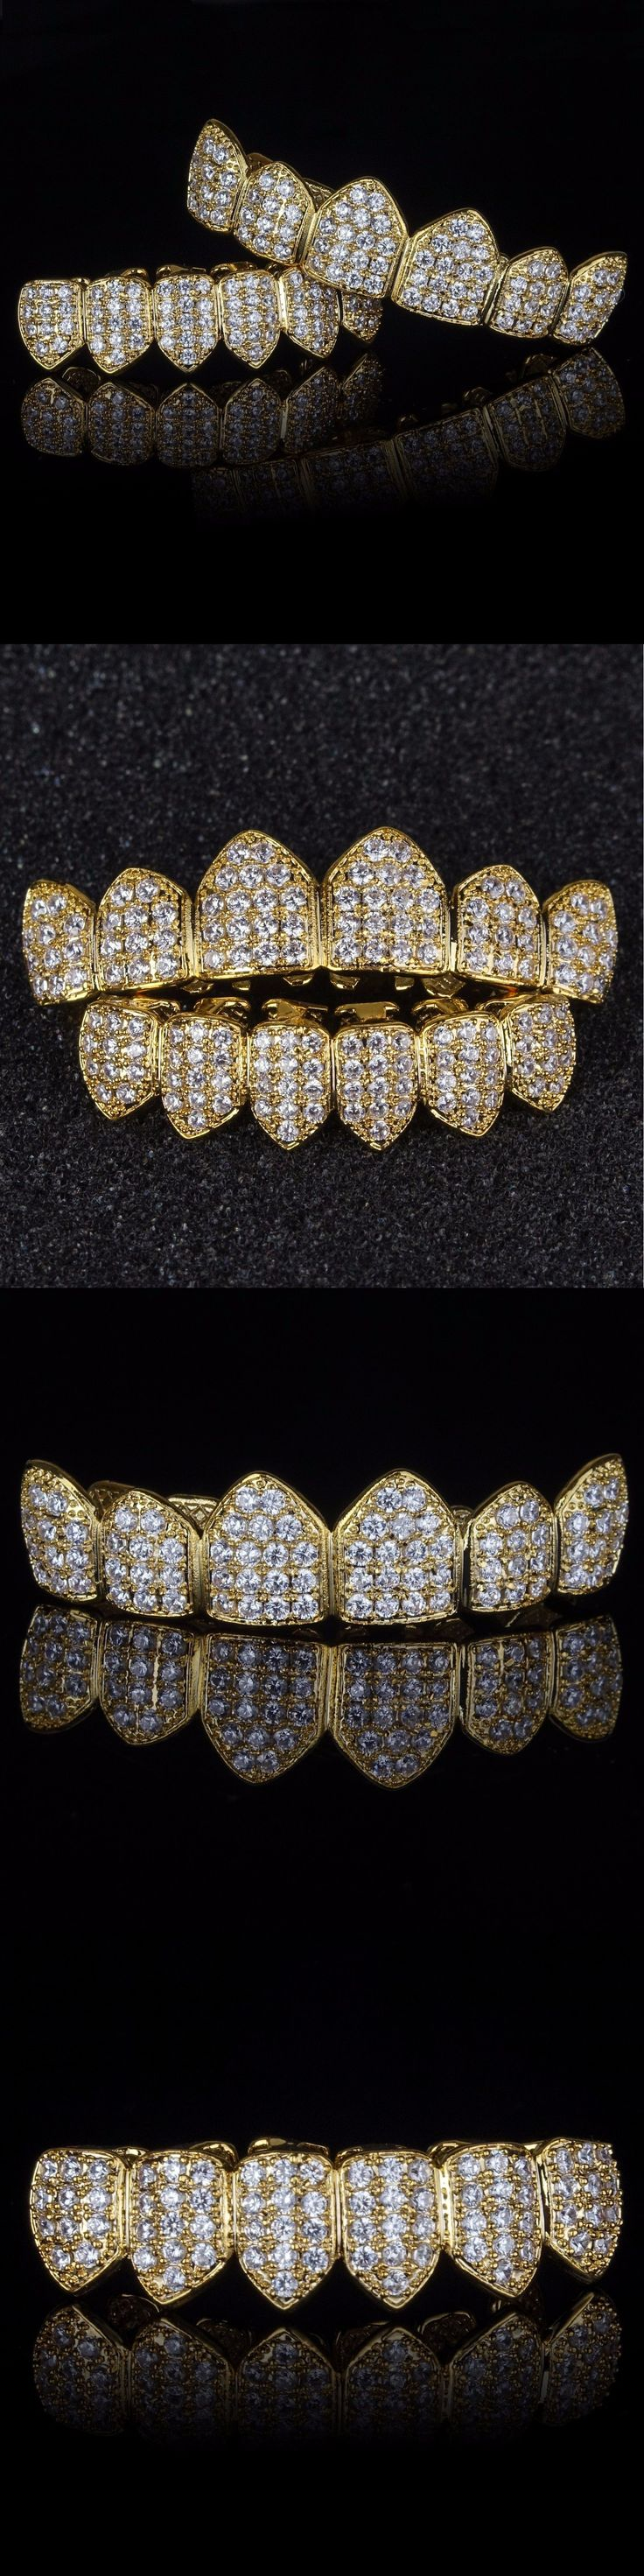 Grillz Dental Grills 152808: 18K Gold Plated High Quality Cz Top And Bottom Grillz Mouth Teeth Grills BUY IT NOW ONLY: $49.99